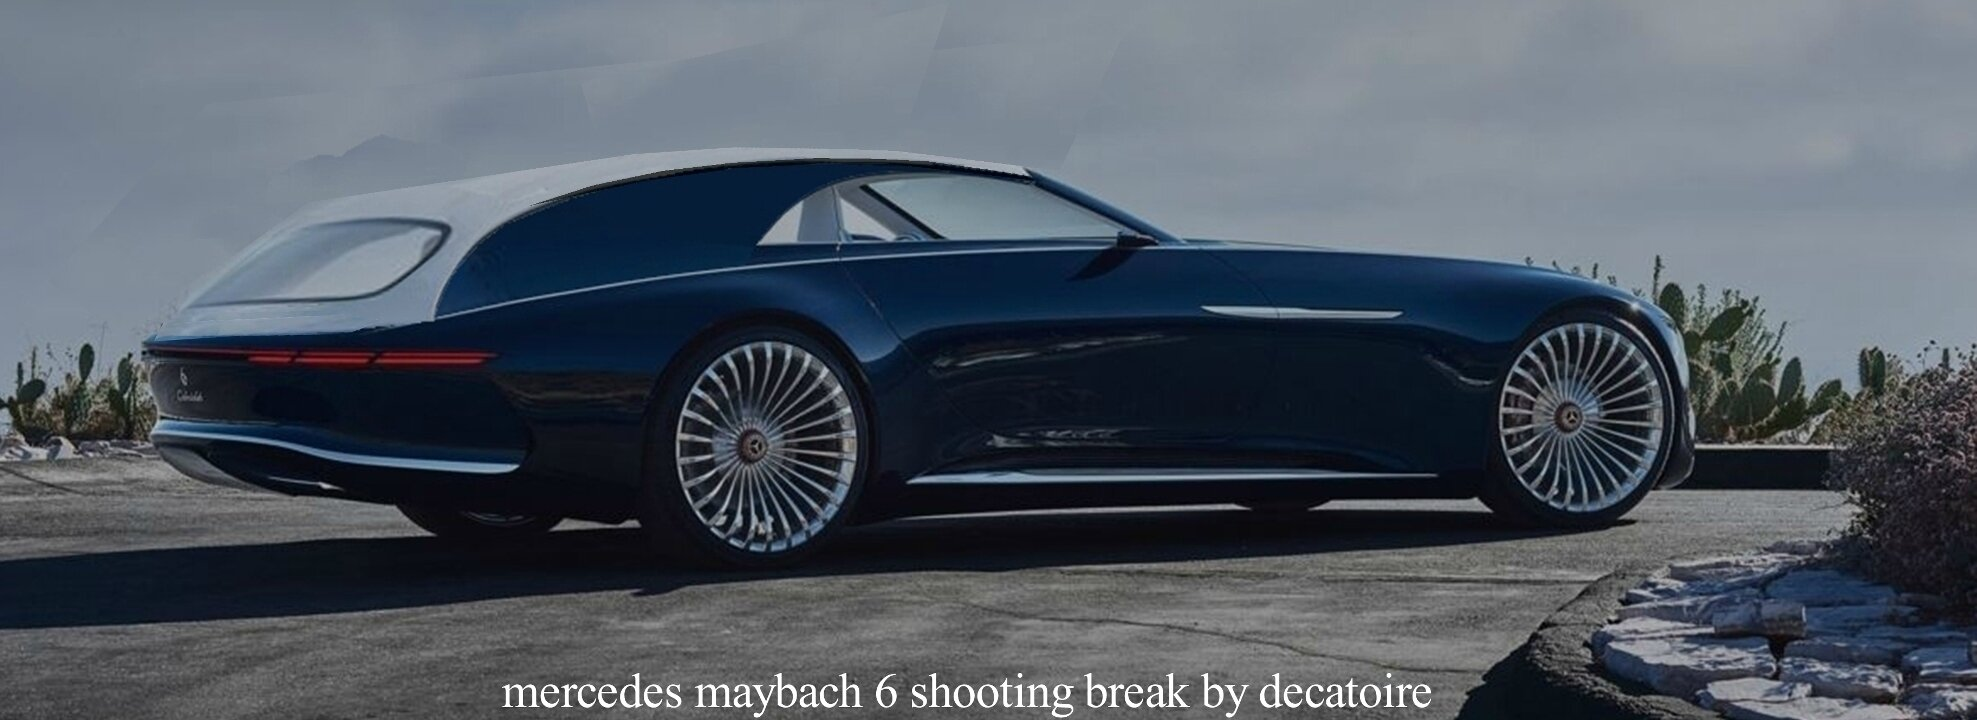 Mercedes-Maybach 6 shooting break